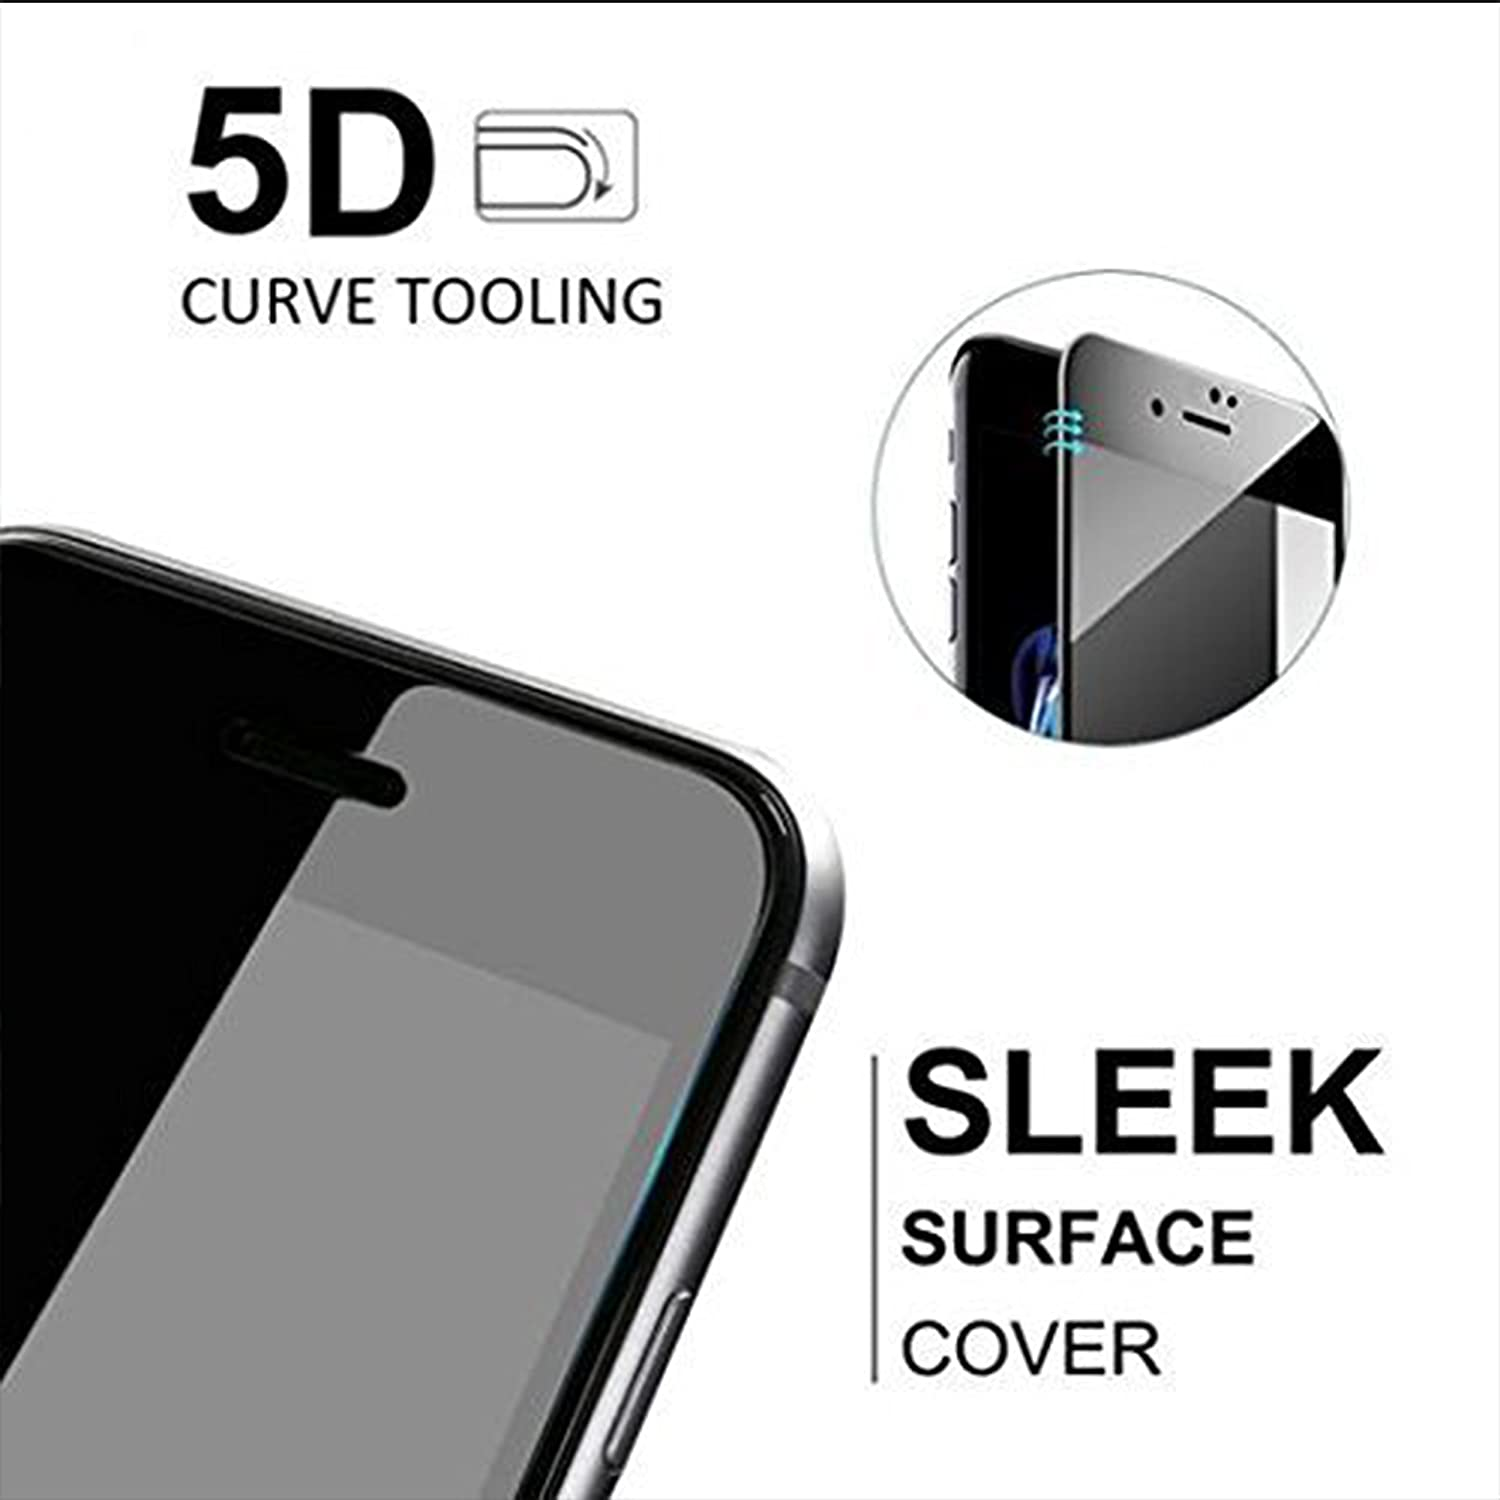 Amazon Buy DigiPrints Full Glue Full Edge to Edge Full Coverage 5D Tempered Glass Screen Protector for Samsung Galaxy C9 Pro